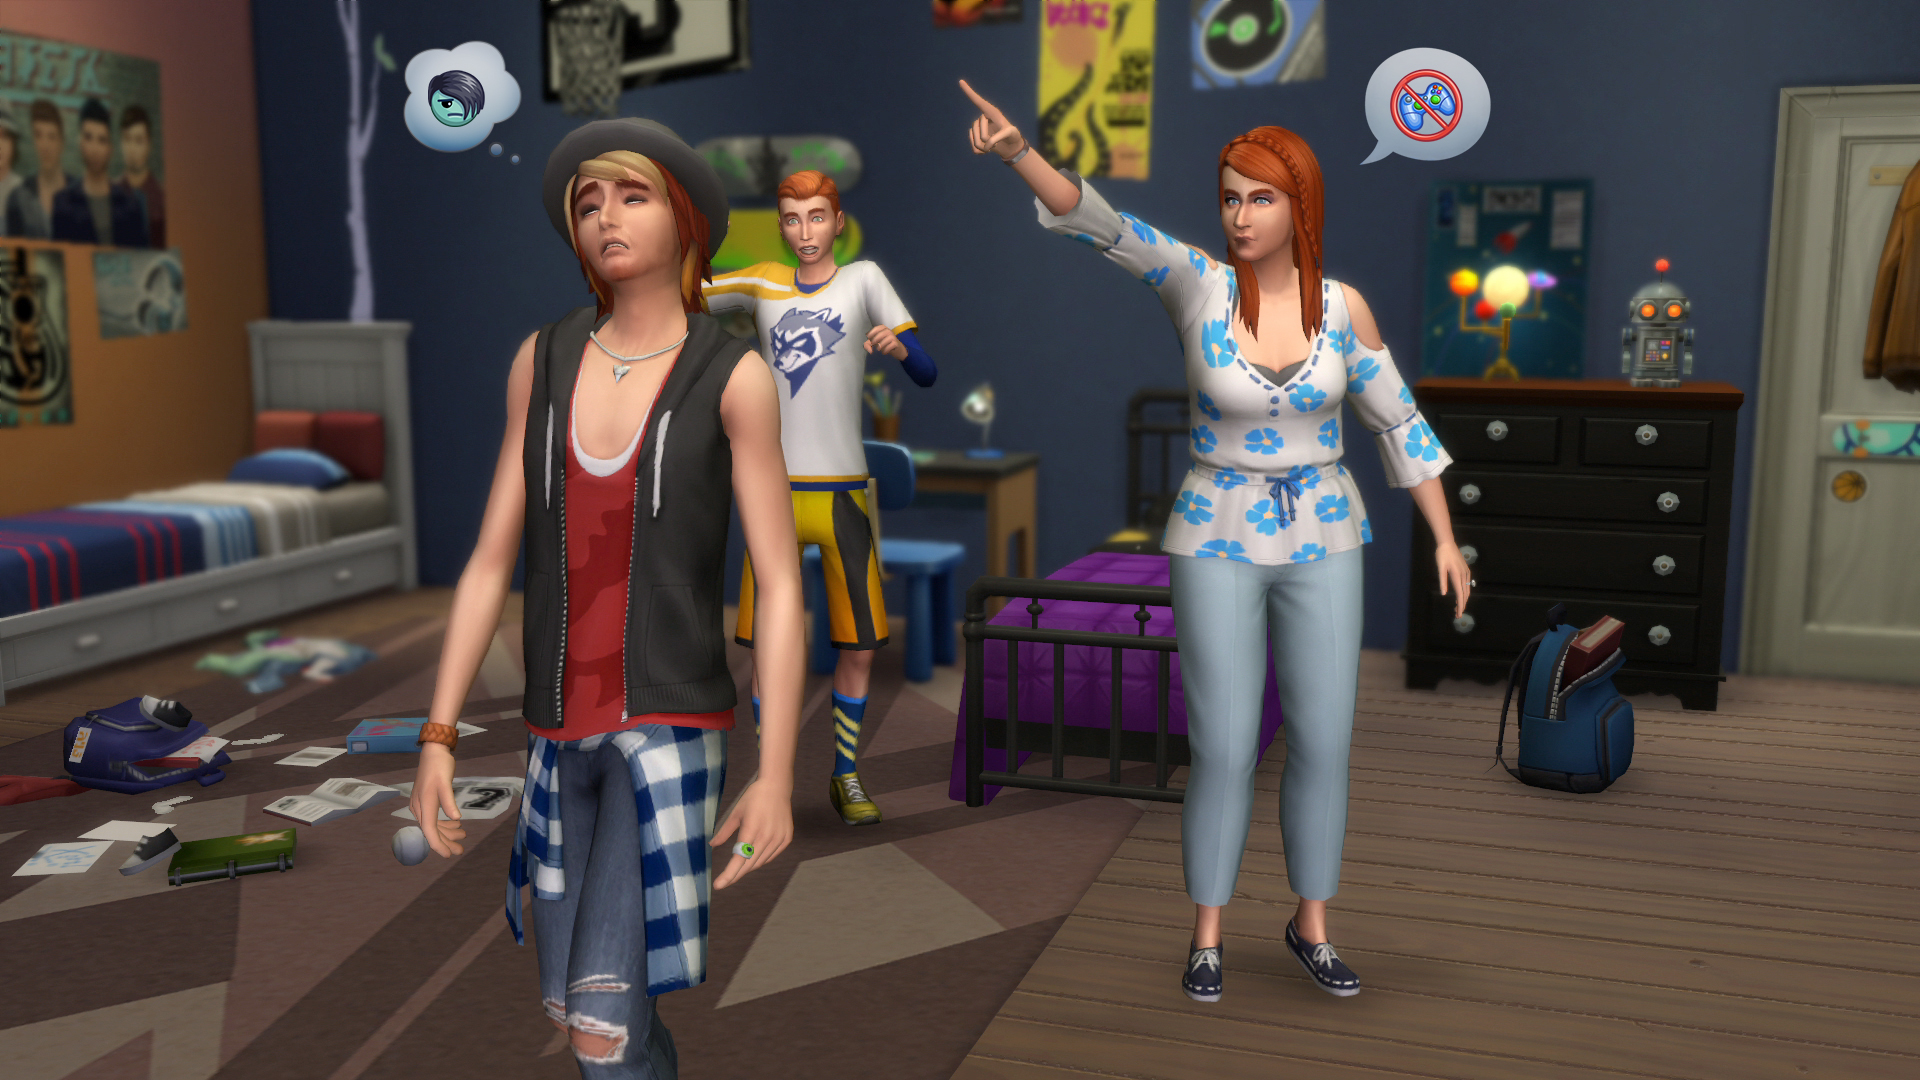 Sims 4 Parenthood Trailer Explains Character Value